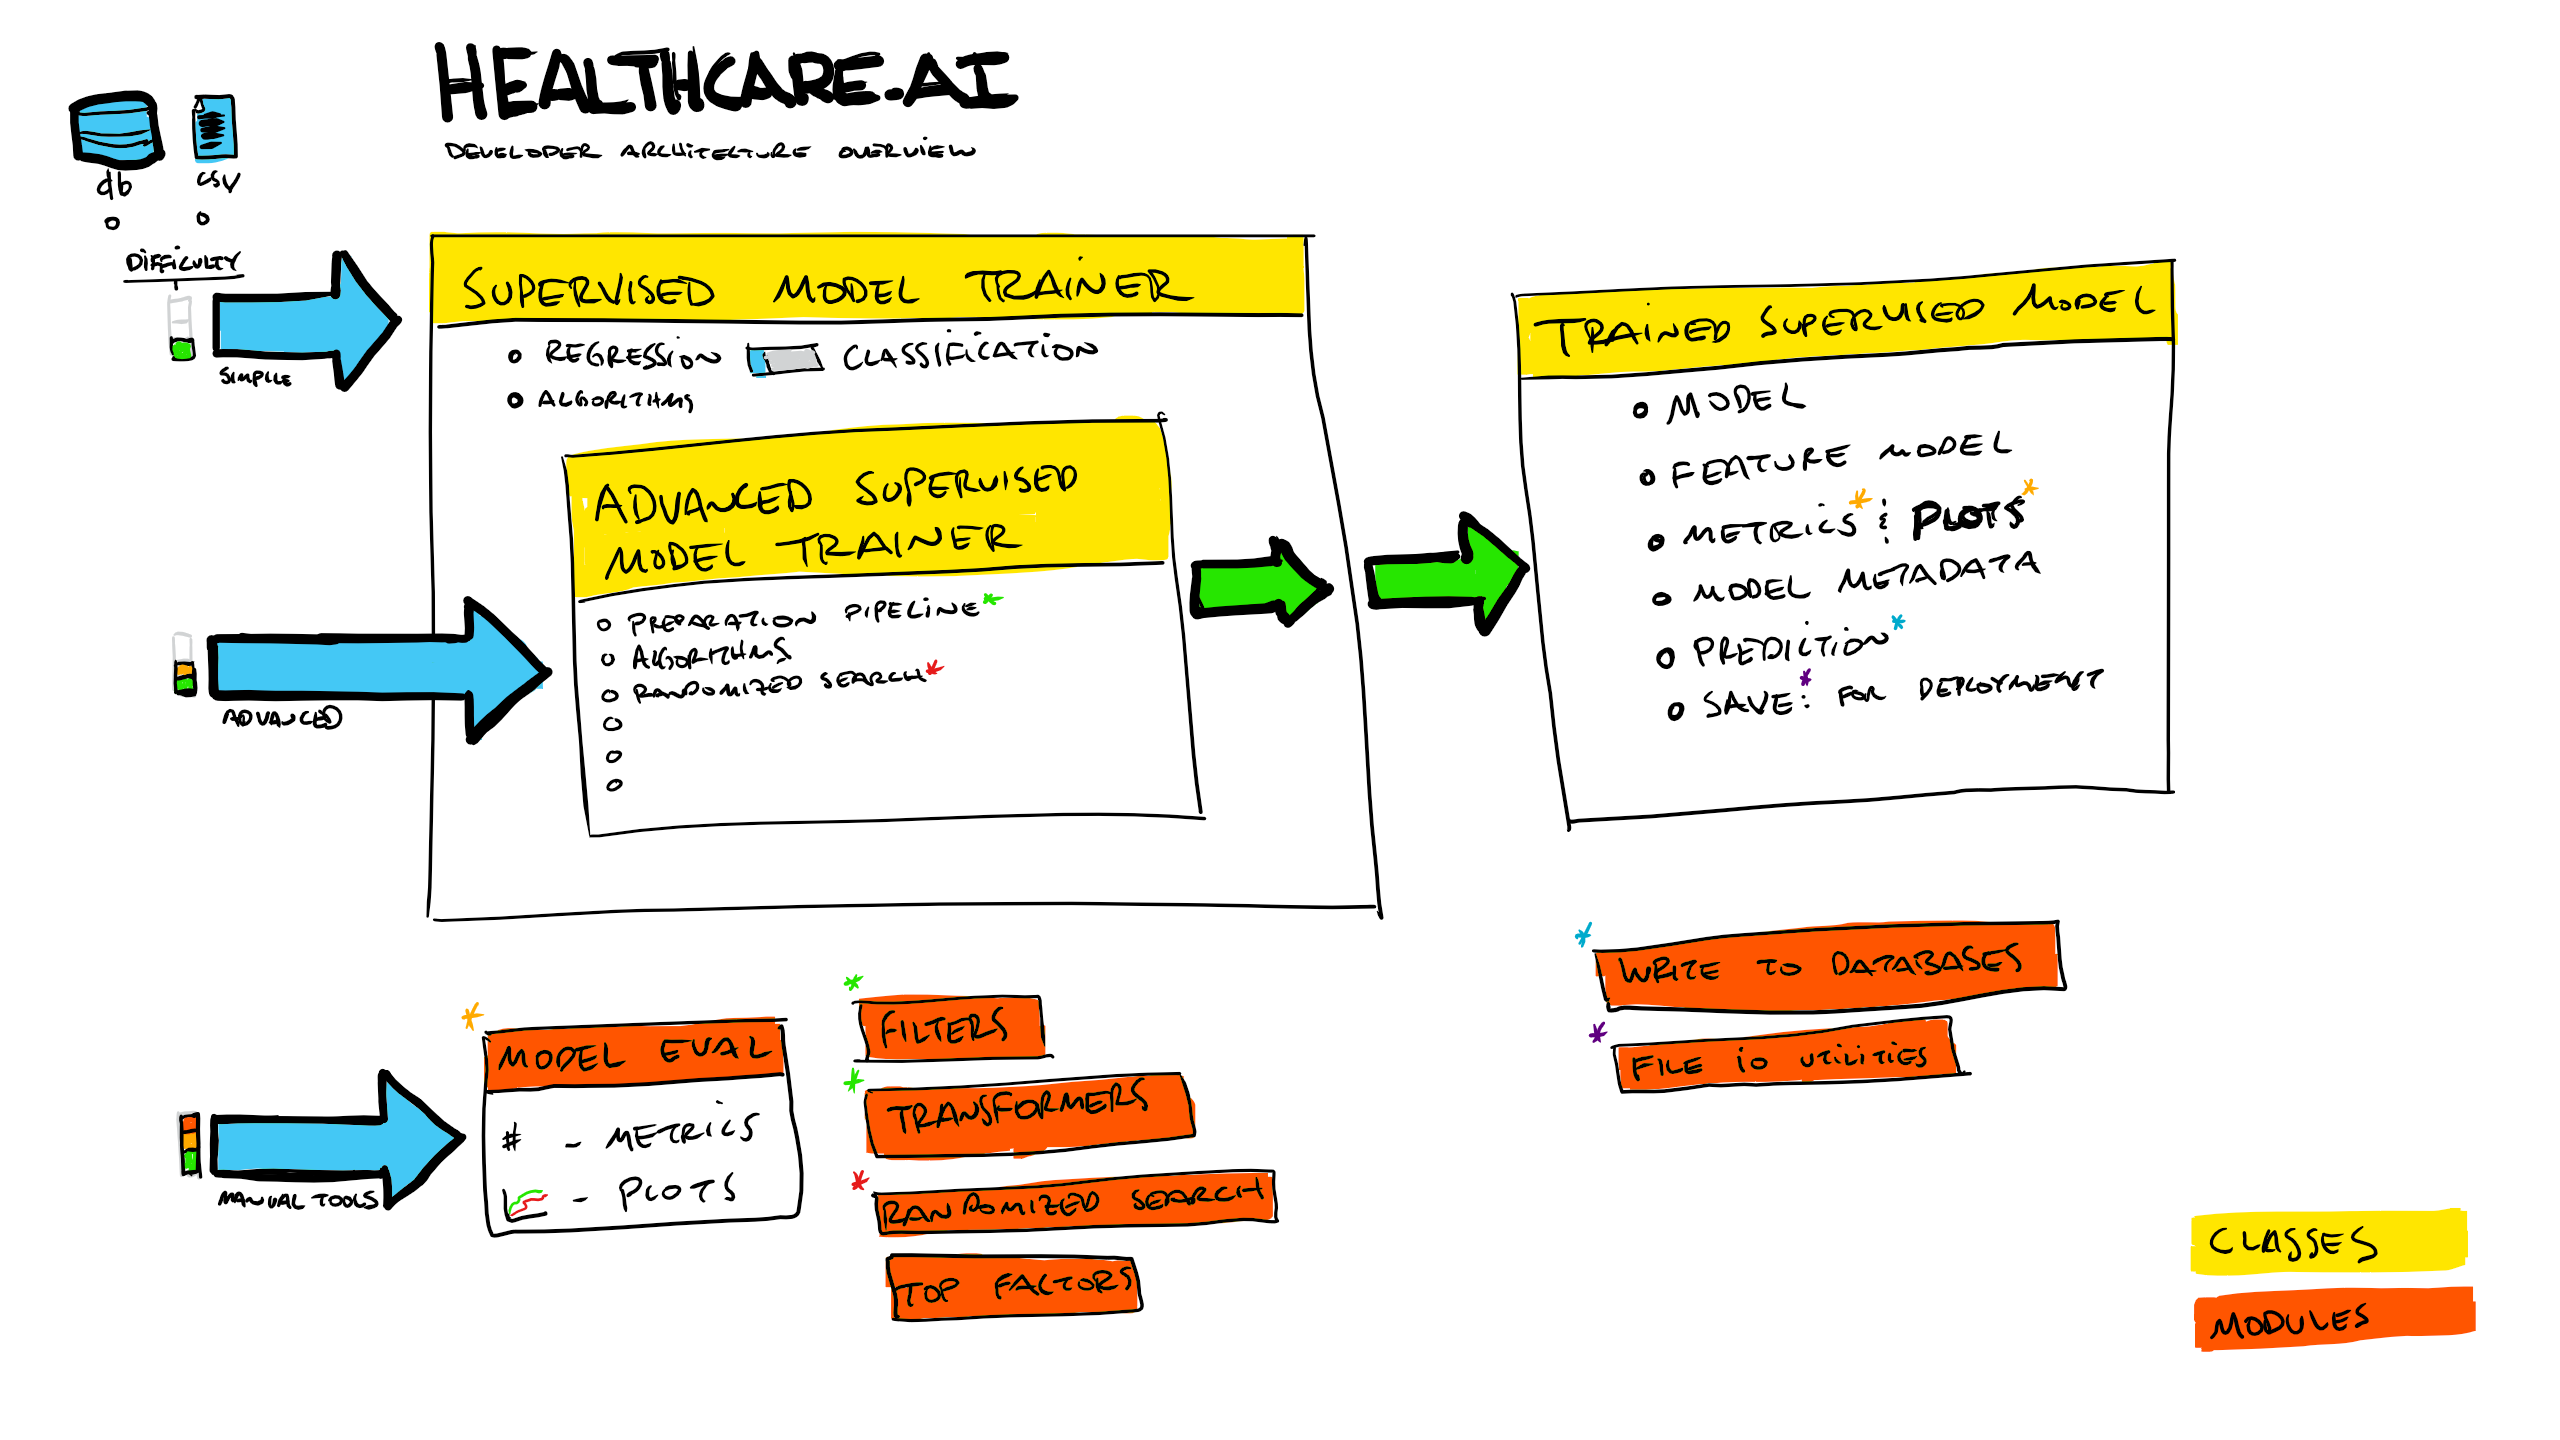 Architecture overview for developers healthcare architecture diagram ccuart Choice Image